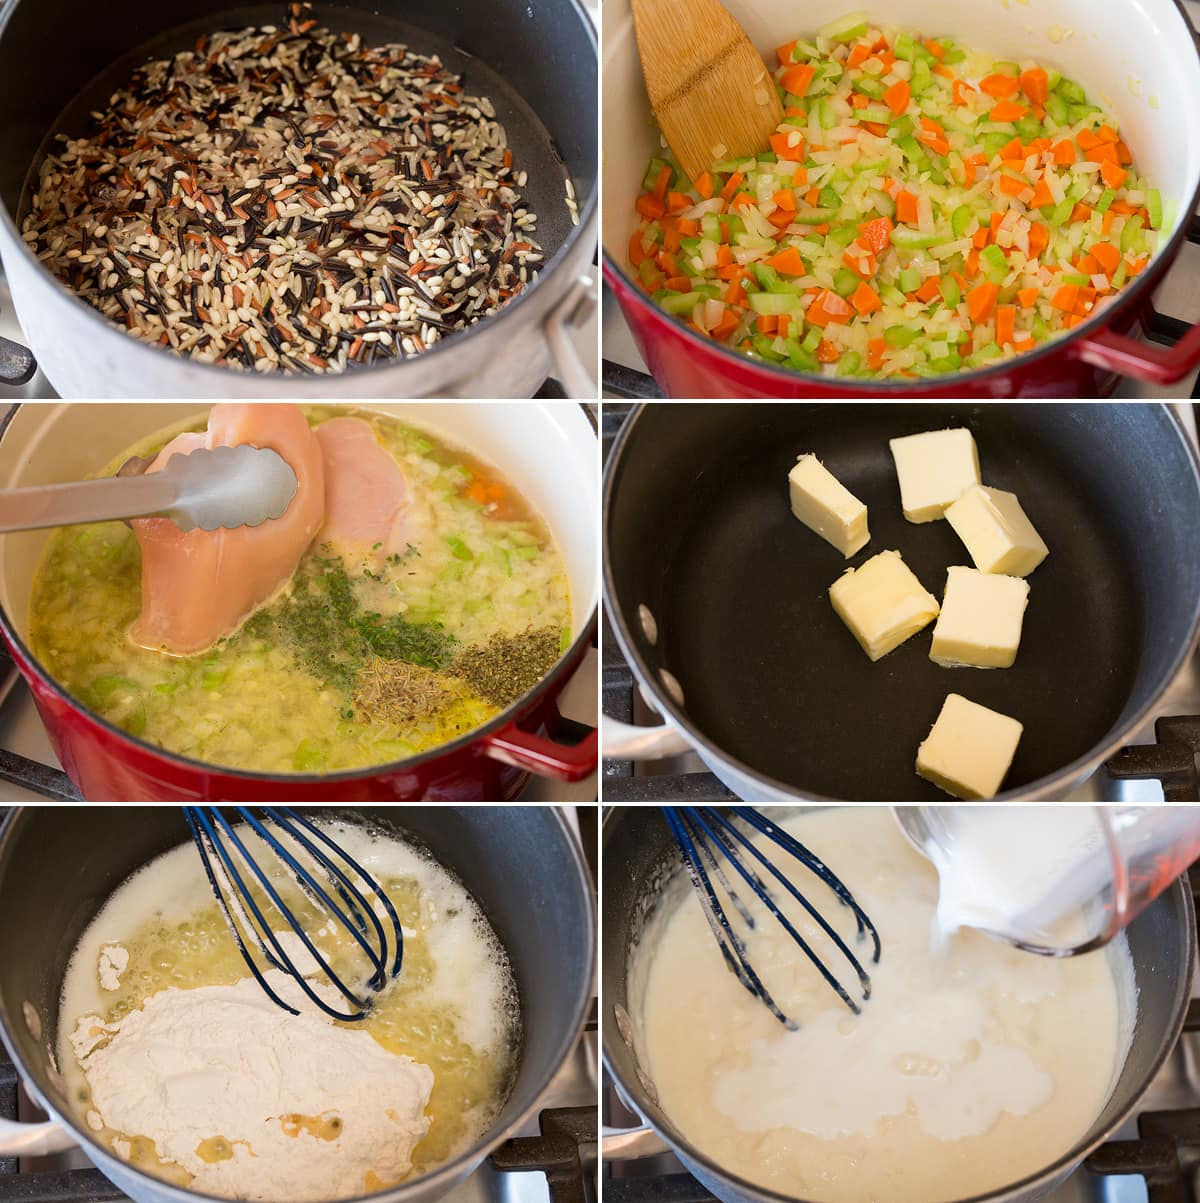 Collage of six images showing steps to preparing chicken and wild rice soup. Shows cooking wild rice separately, cooking chicken broth and herbs, then making bechemel sauce in a saucepan.